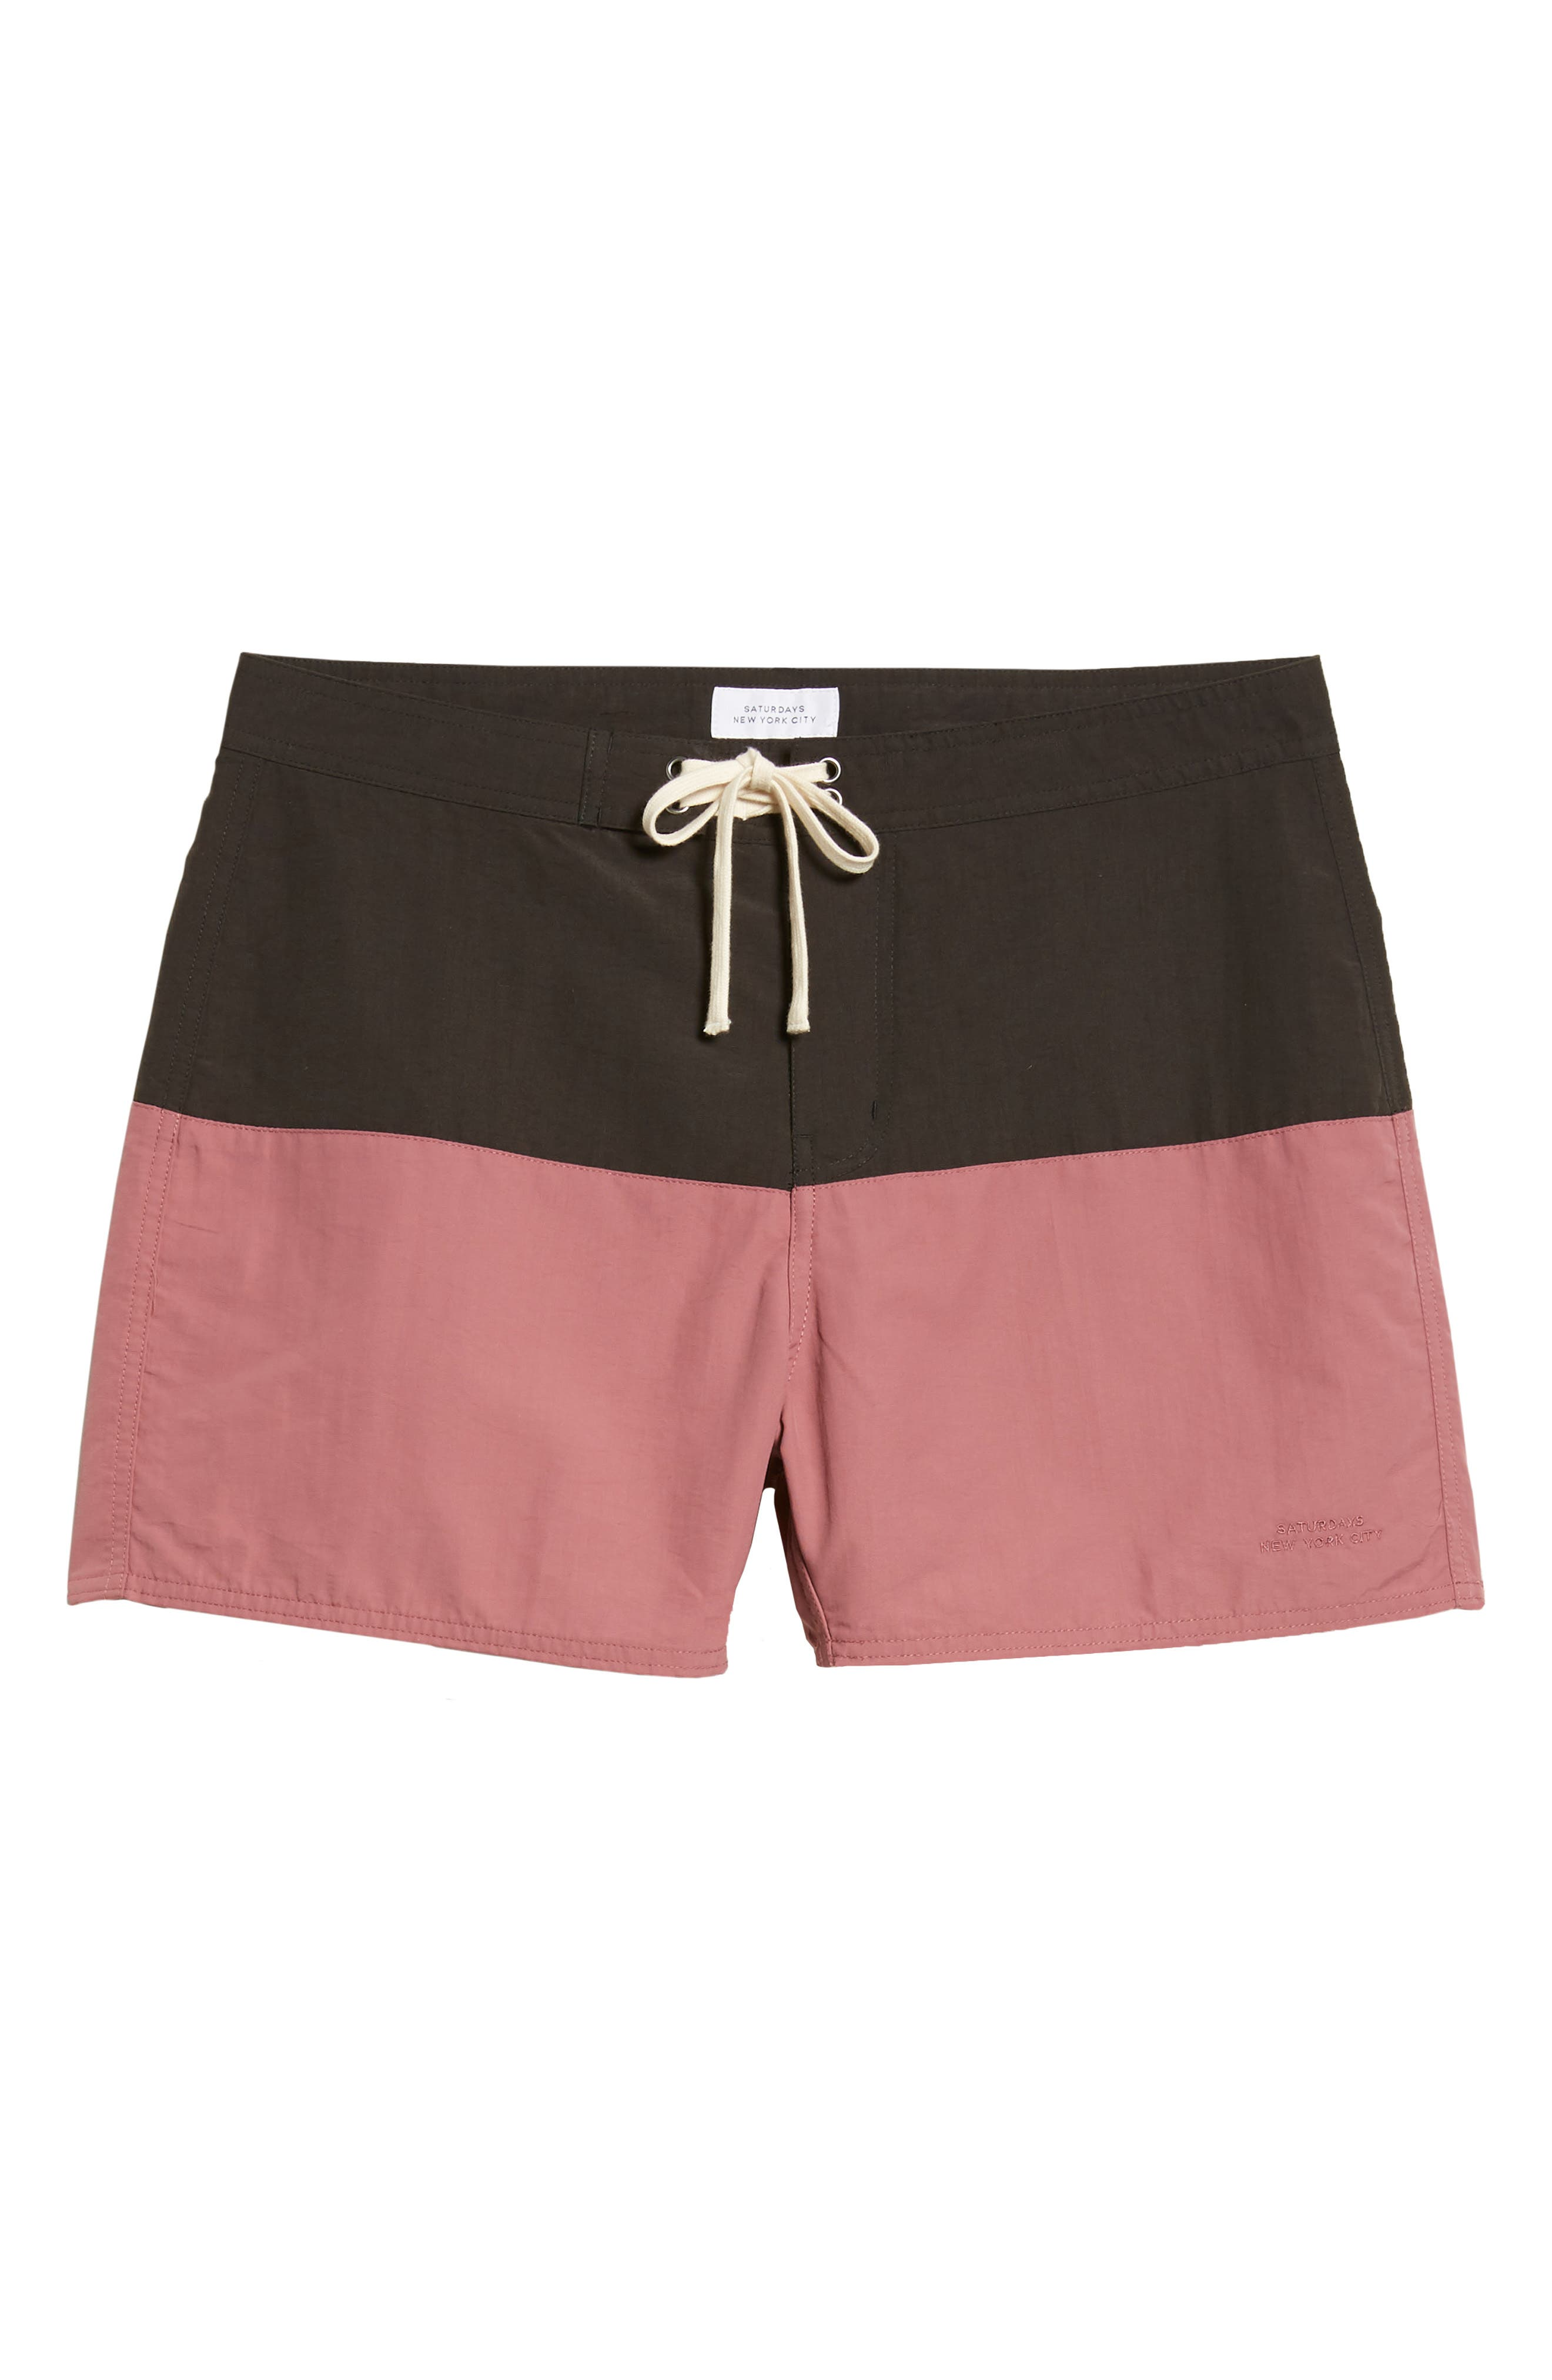 Ennis Colorblock Swim Trunks,                             Alternate thumbnail 6, color,                             001